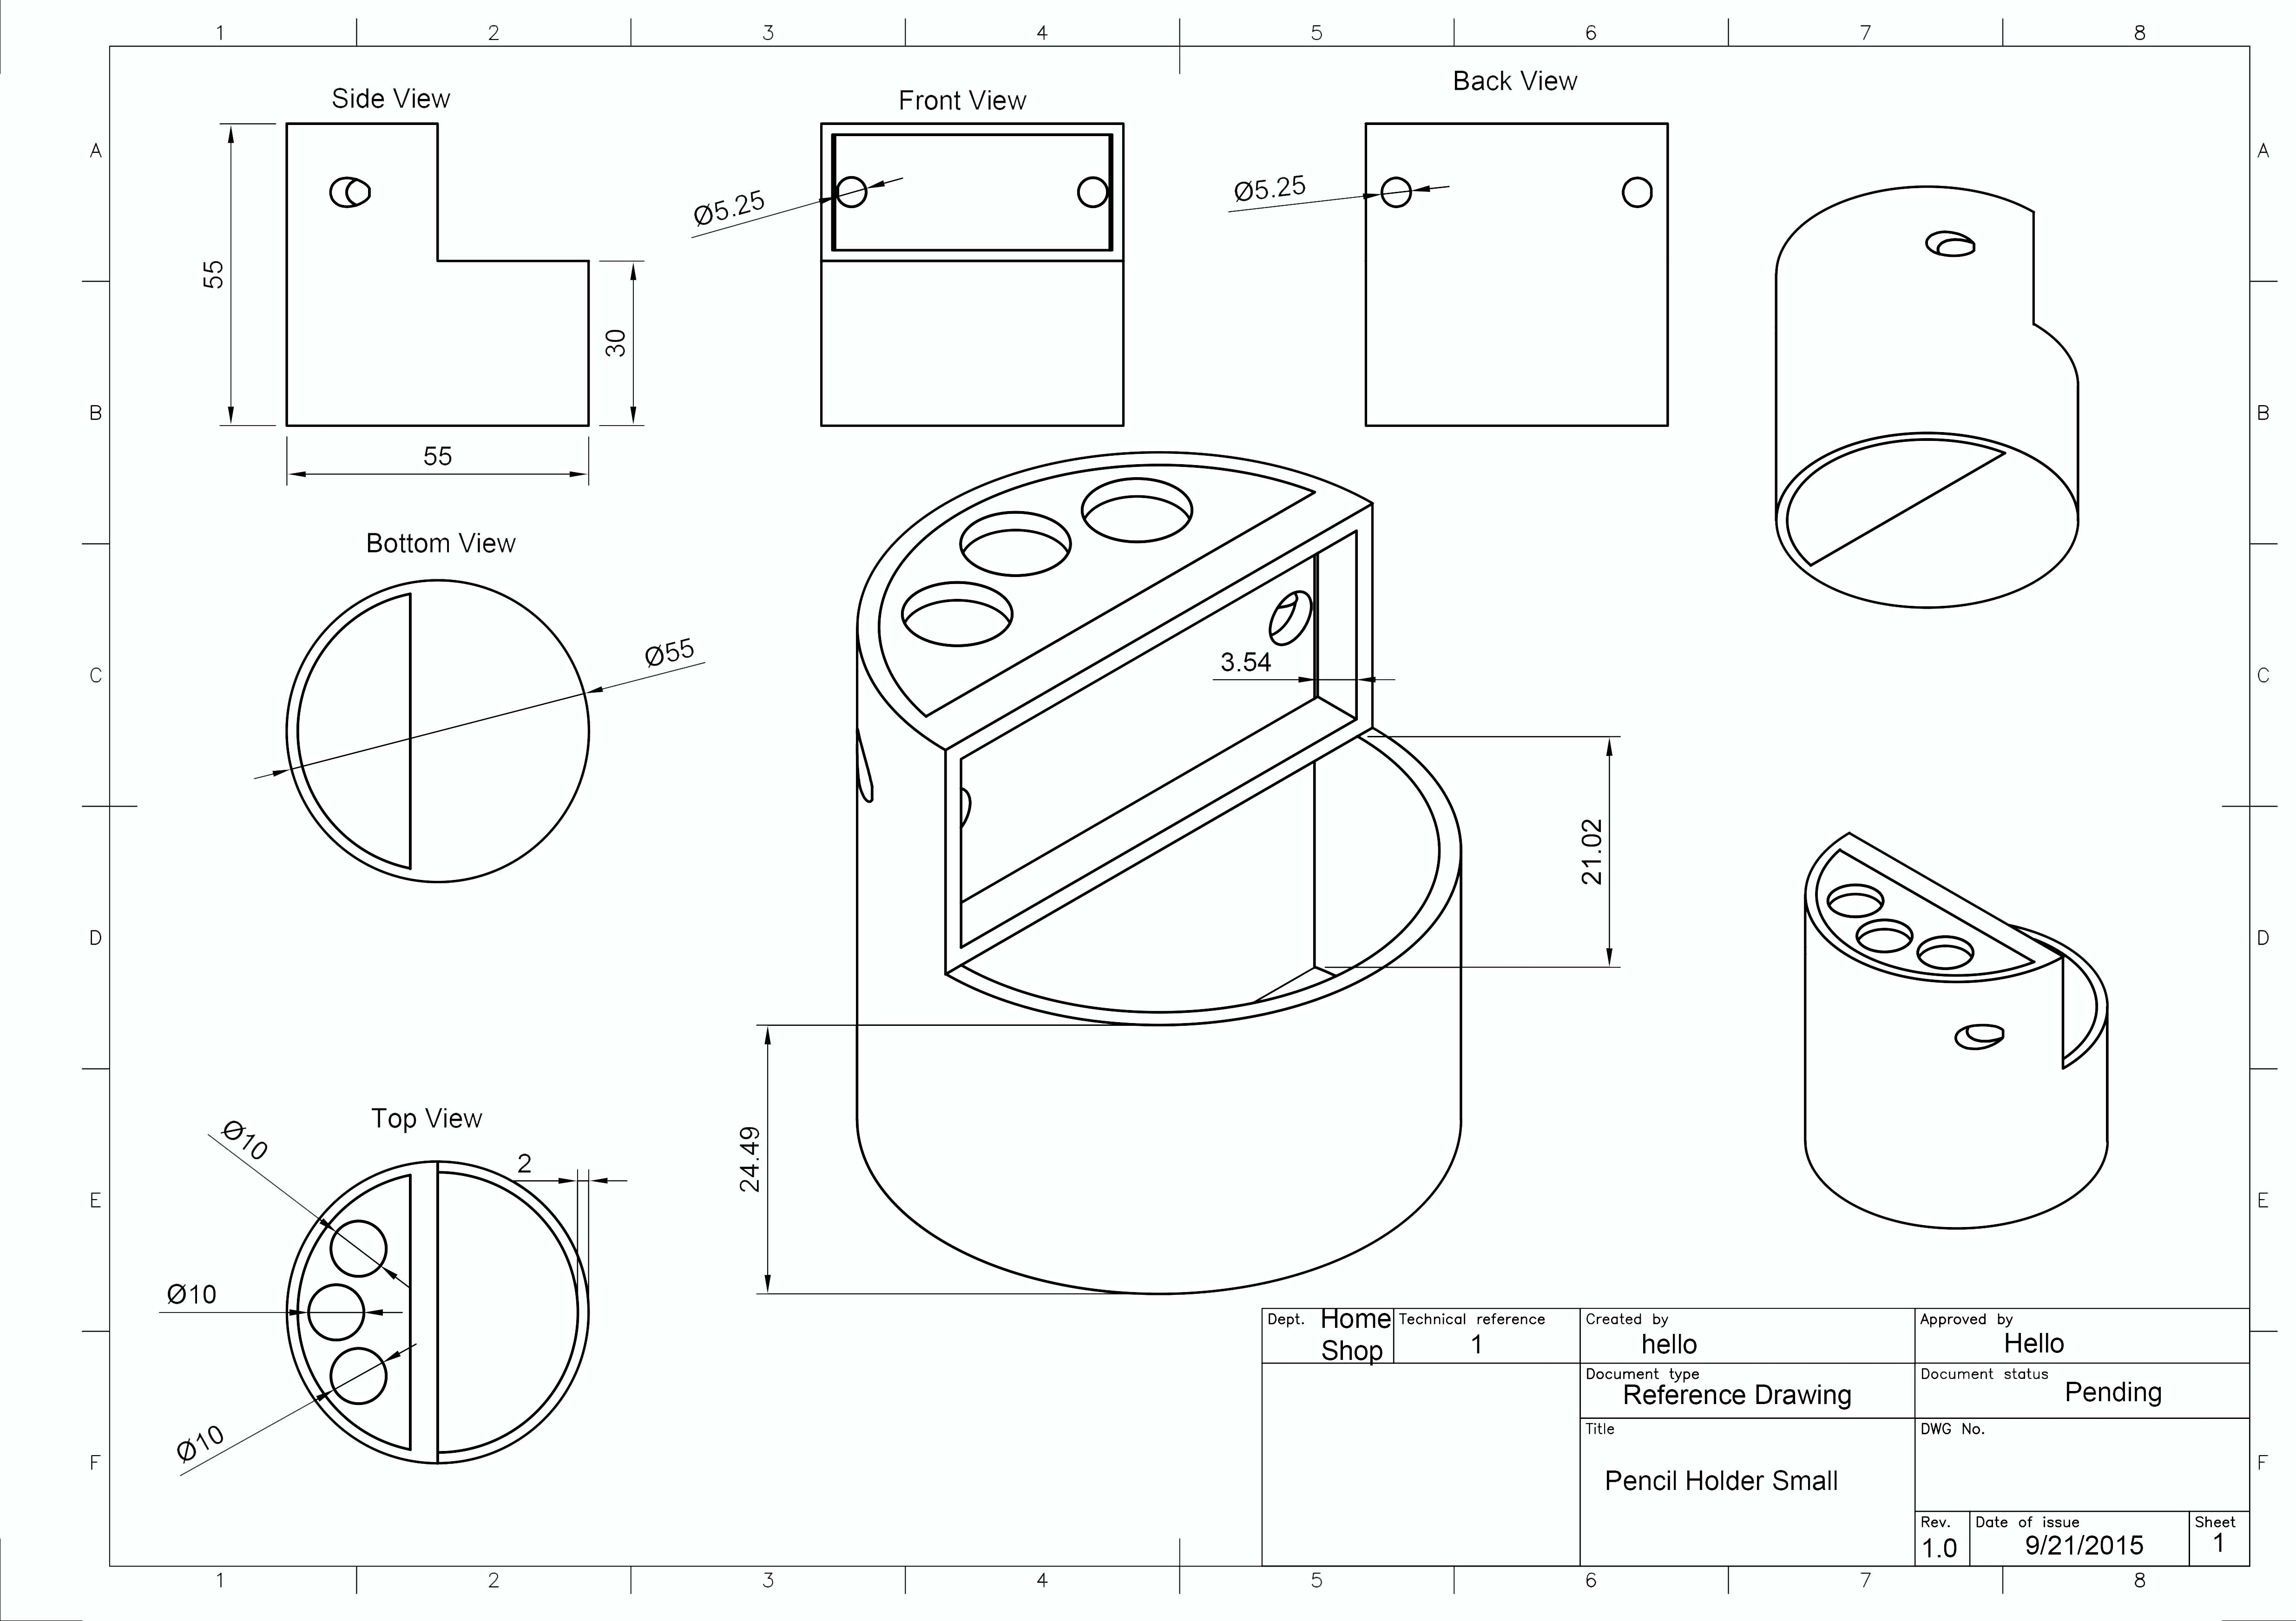 Solved: Turning a design into a blueprint - Autodesk Community ...